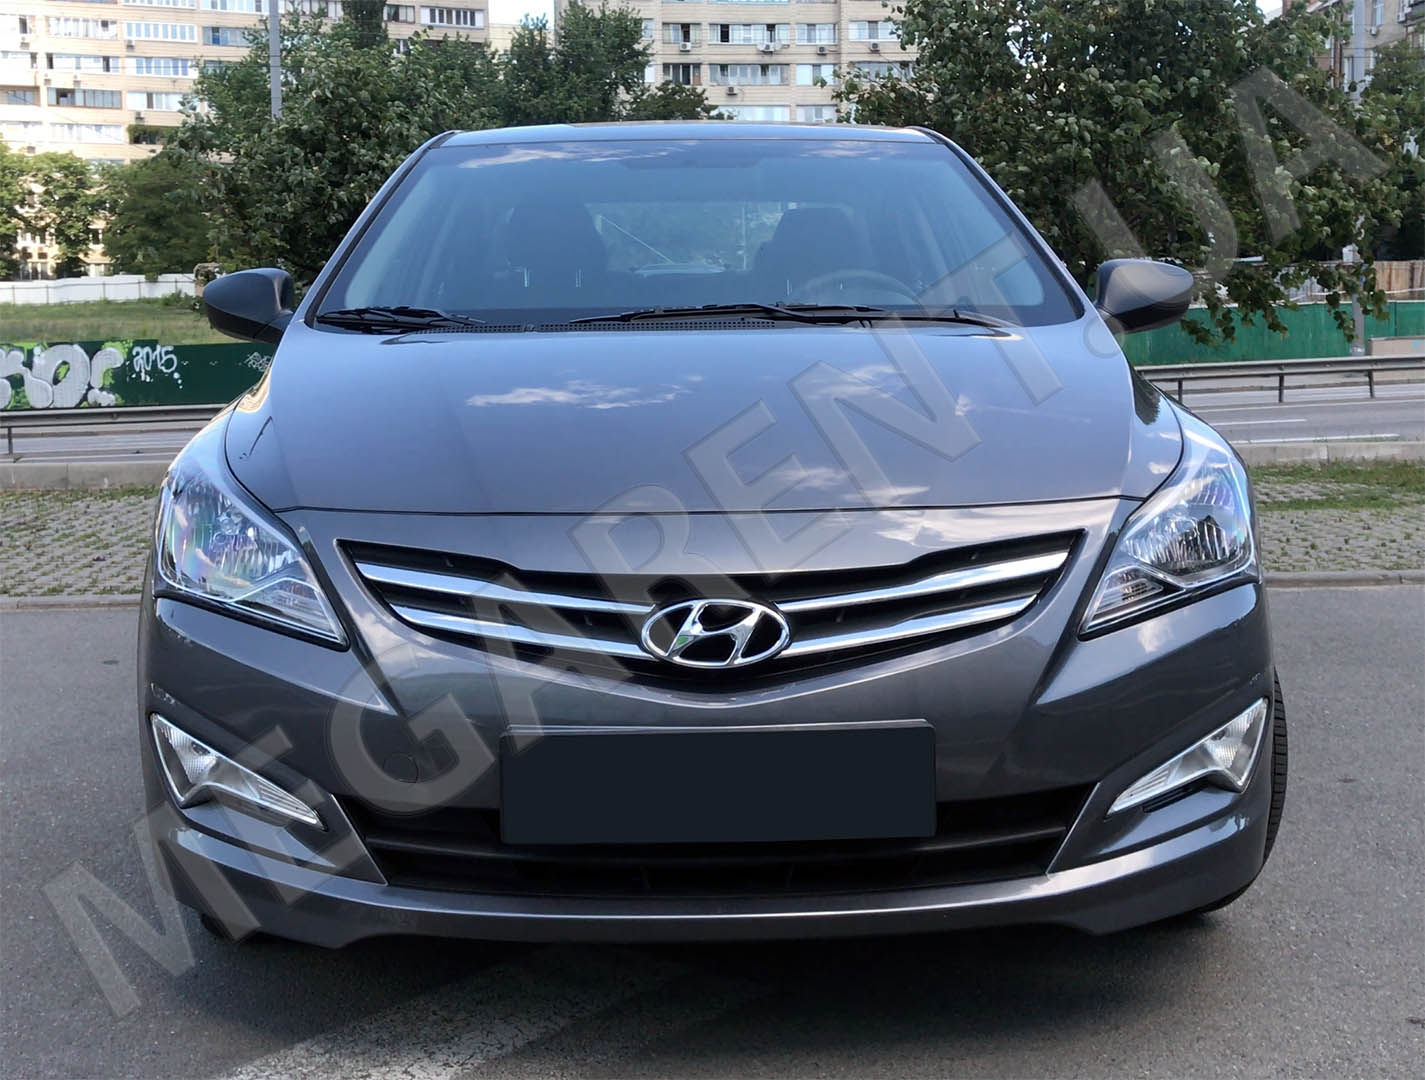 Car rental HYUNDAI SOLARIS (ACCENT) 2017 in Kiev - photo 6